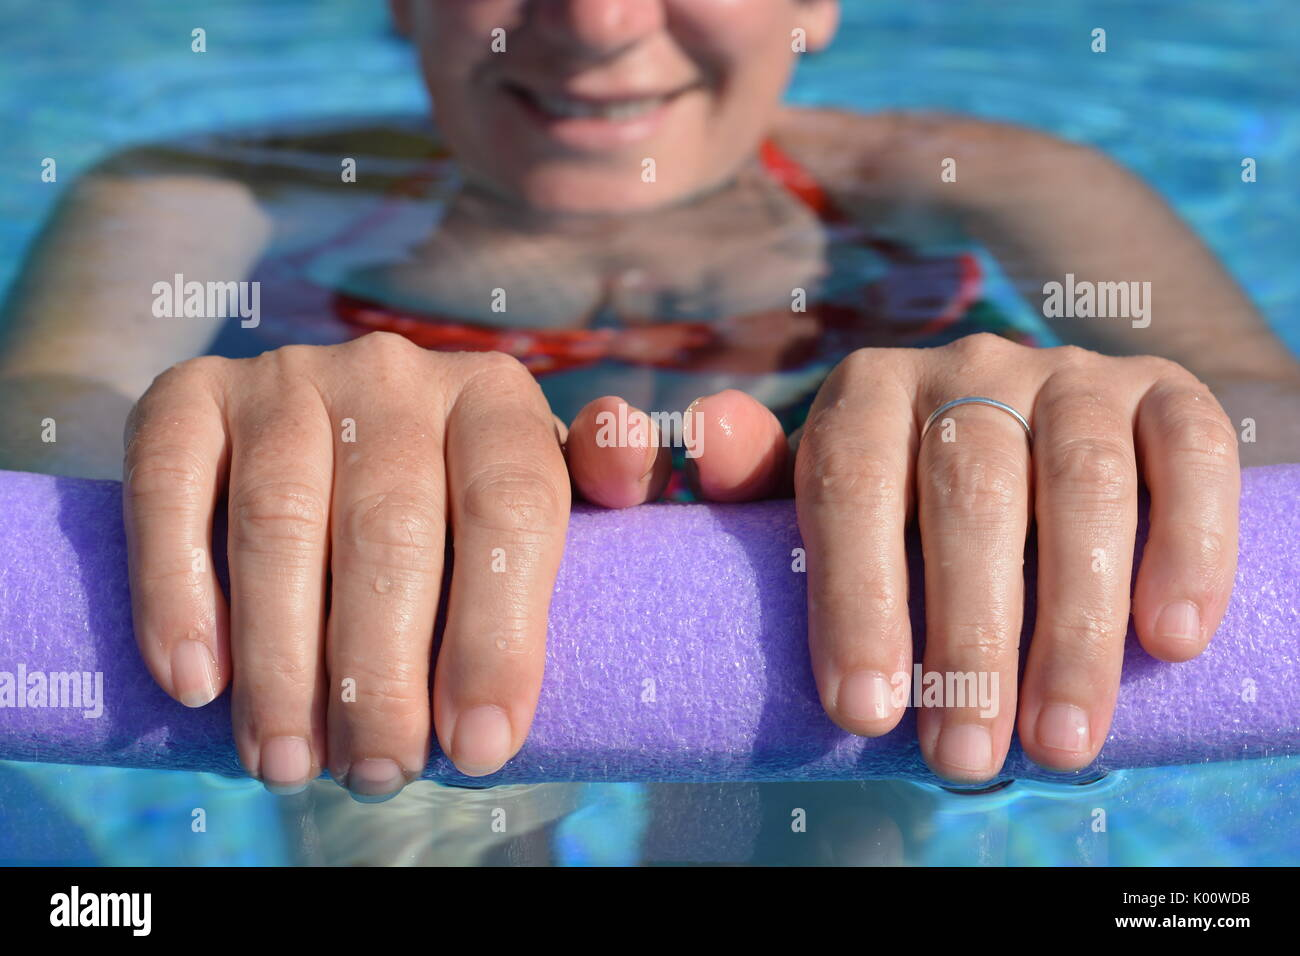 Woman in swimming pool, hands on a pool noodle - Stock Image